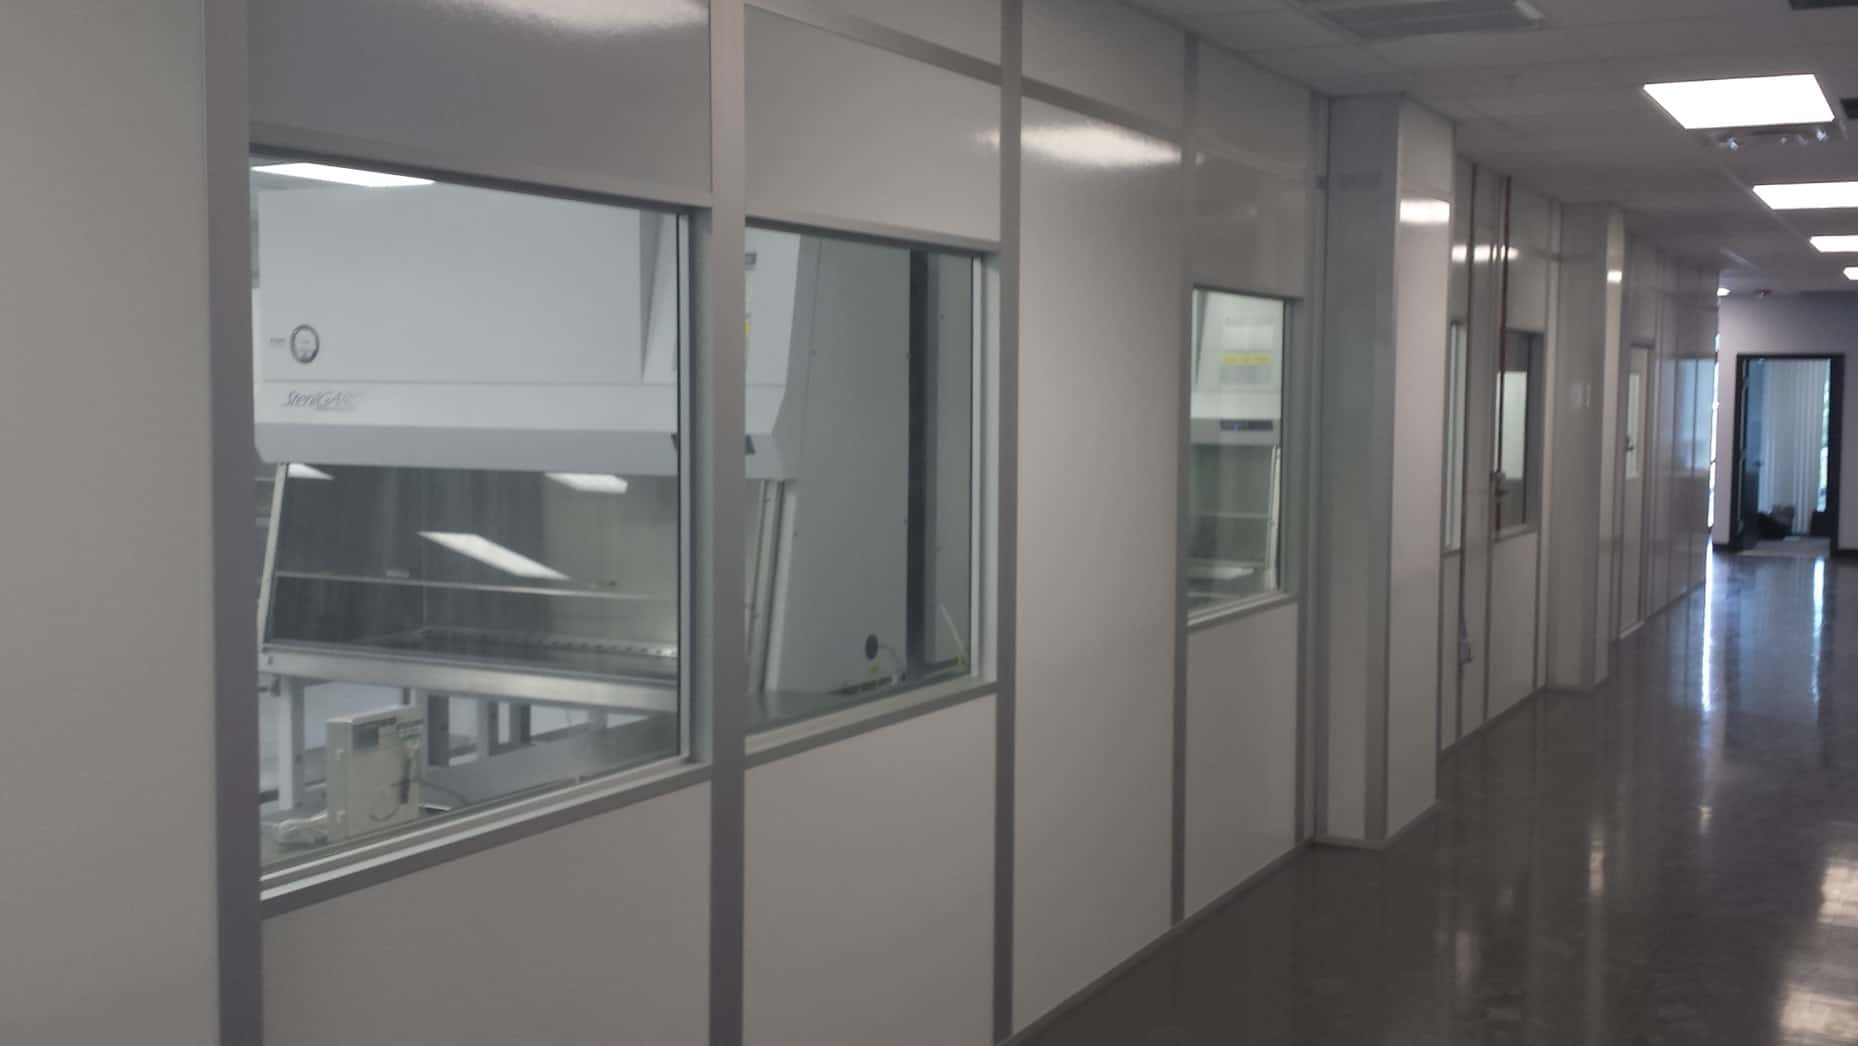 Modular Cleanrooms Gallery  Modular Cleanrooms  PortaKing